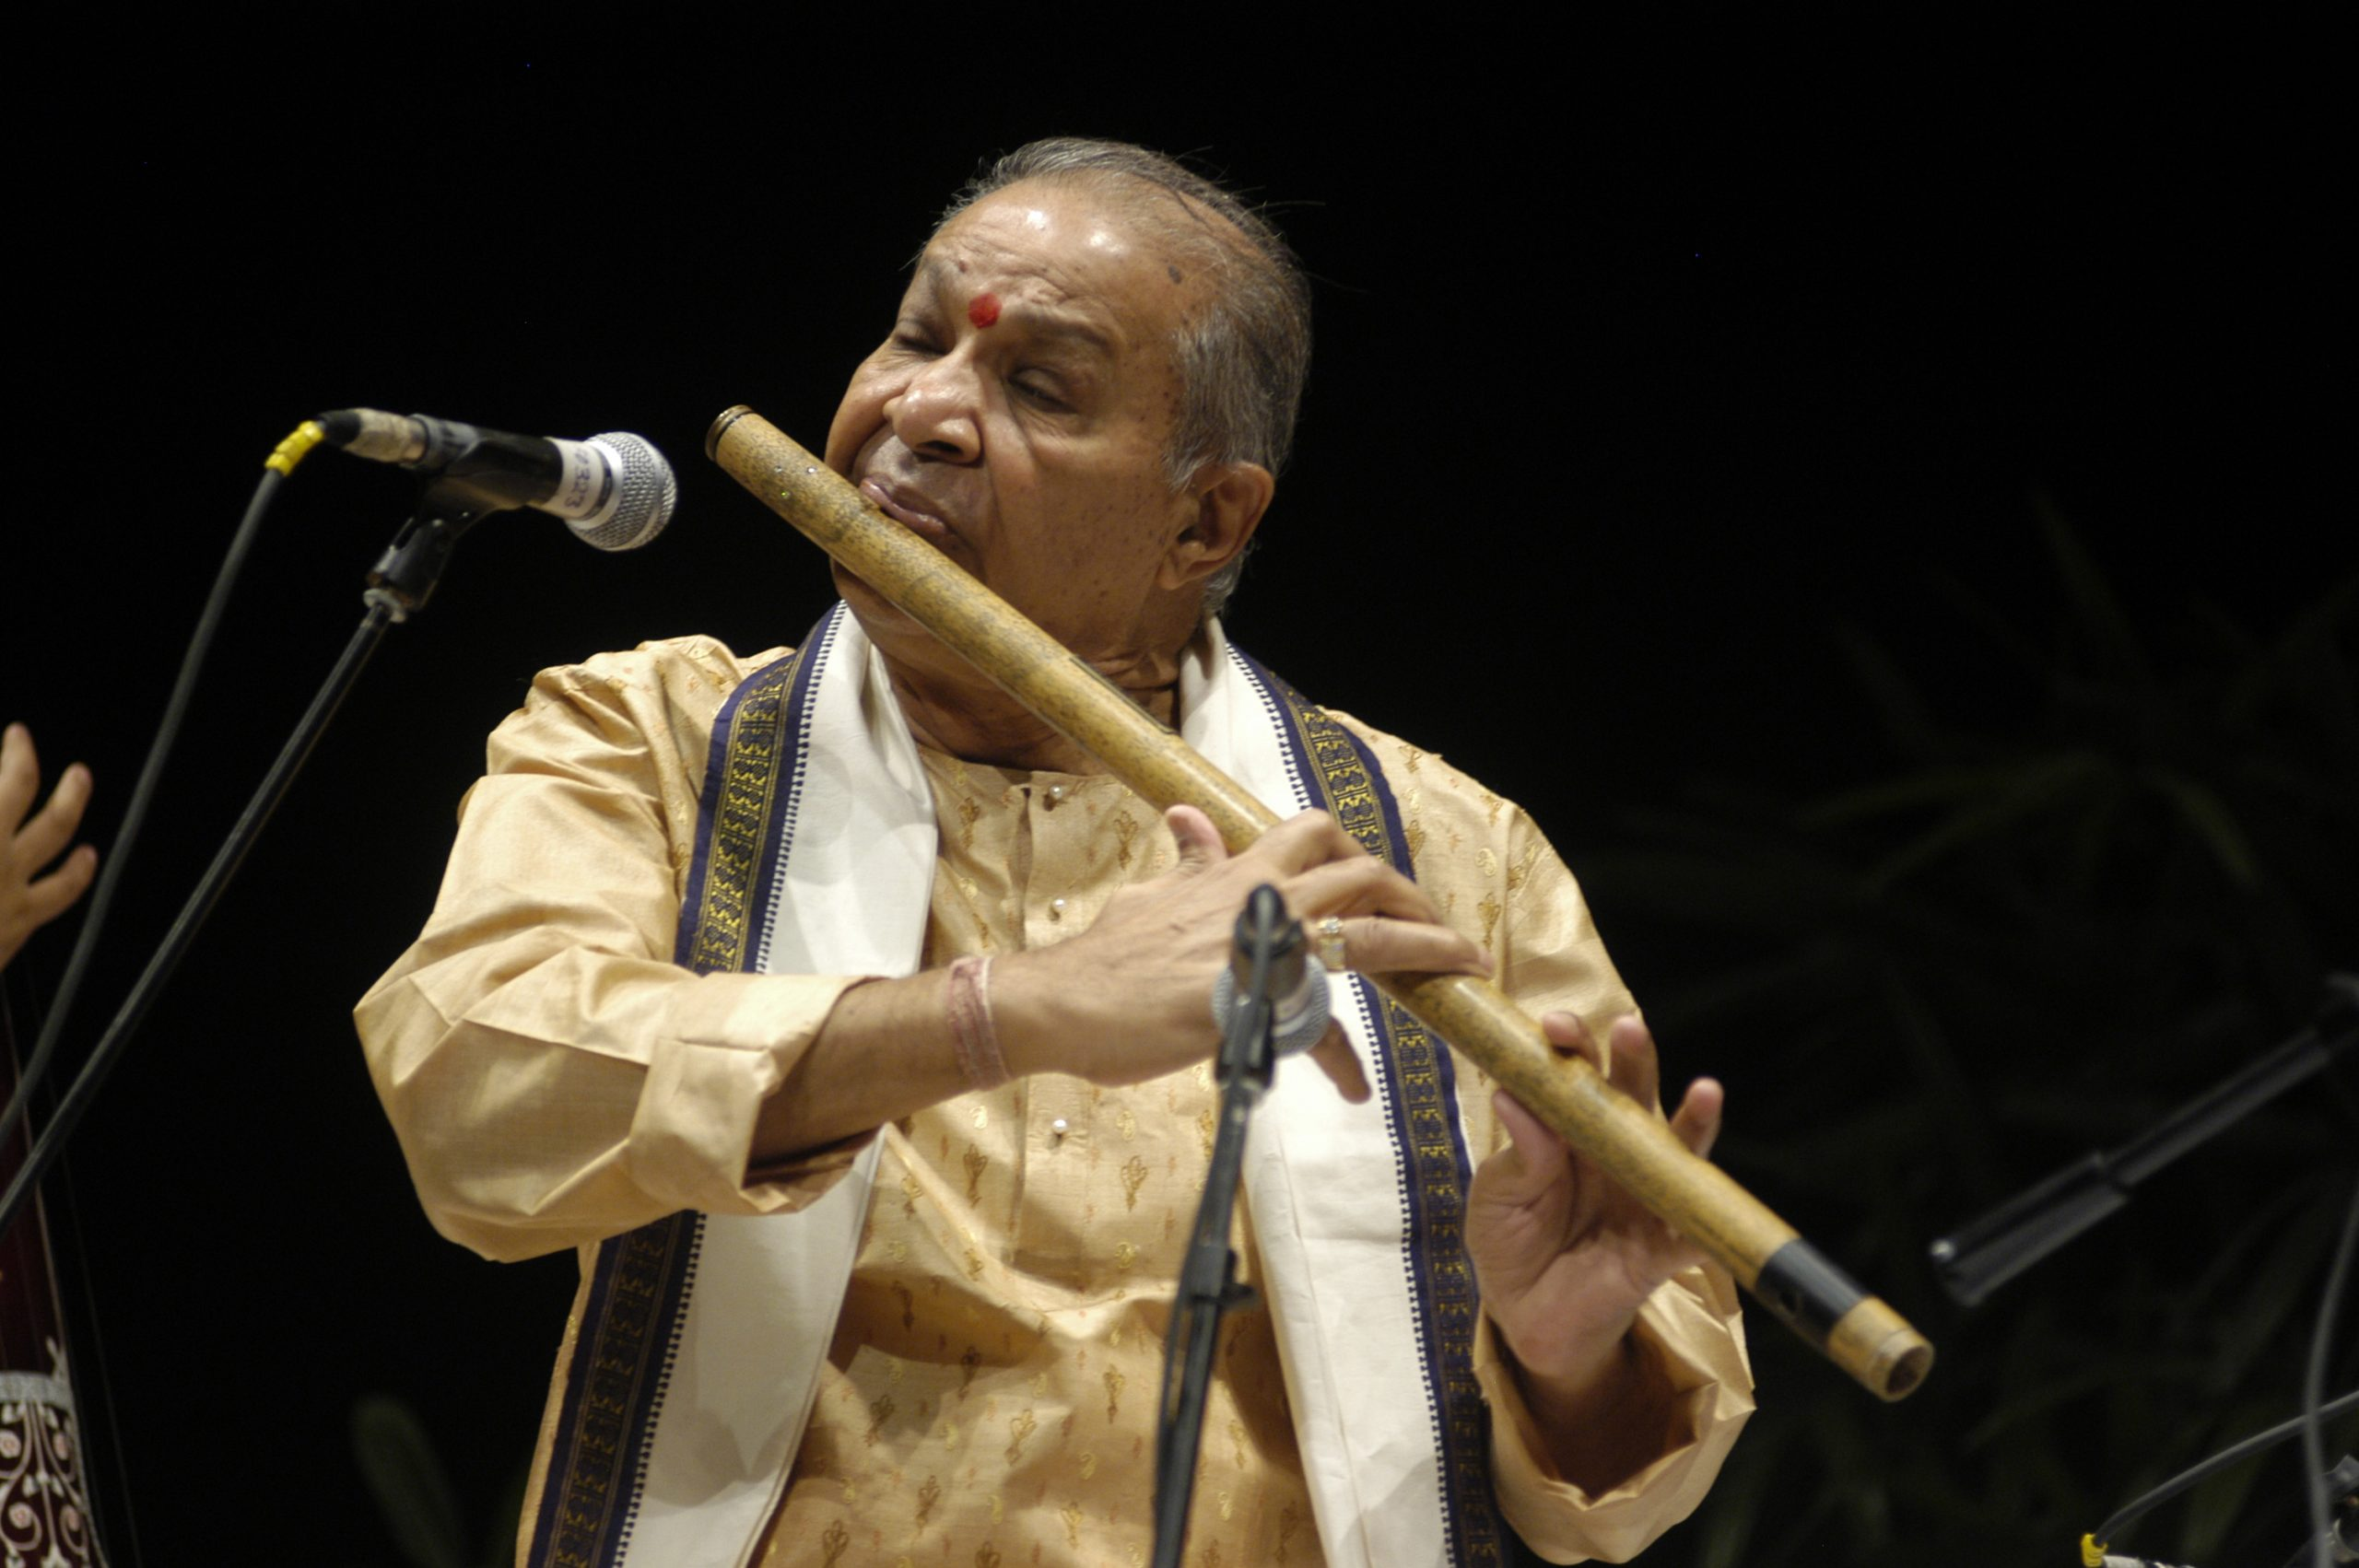 Besides Pure Classical Ragas, Hariprasad Chaurasia Worked on Experimental Music